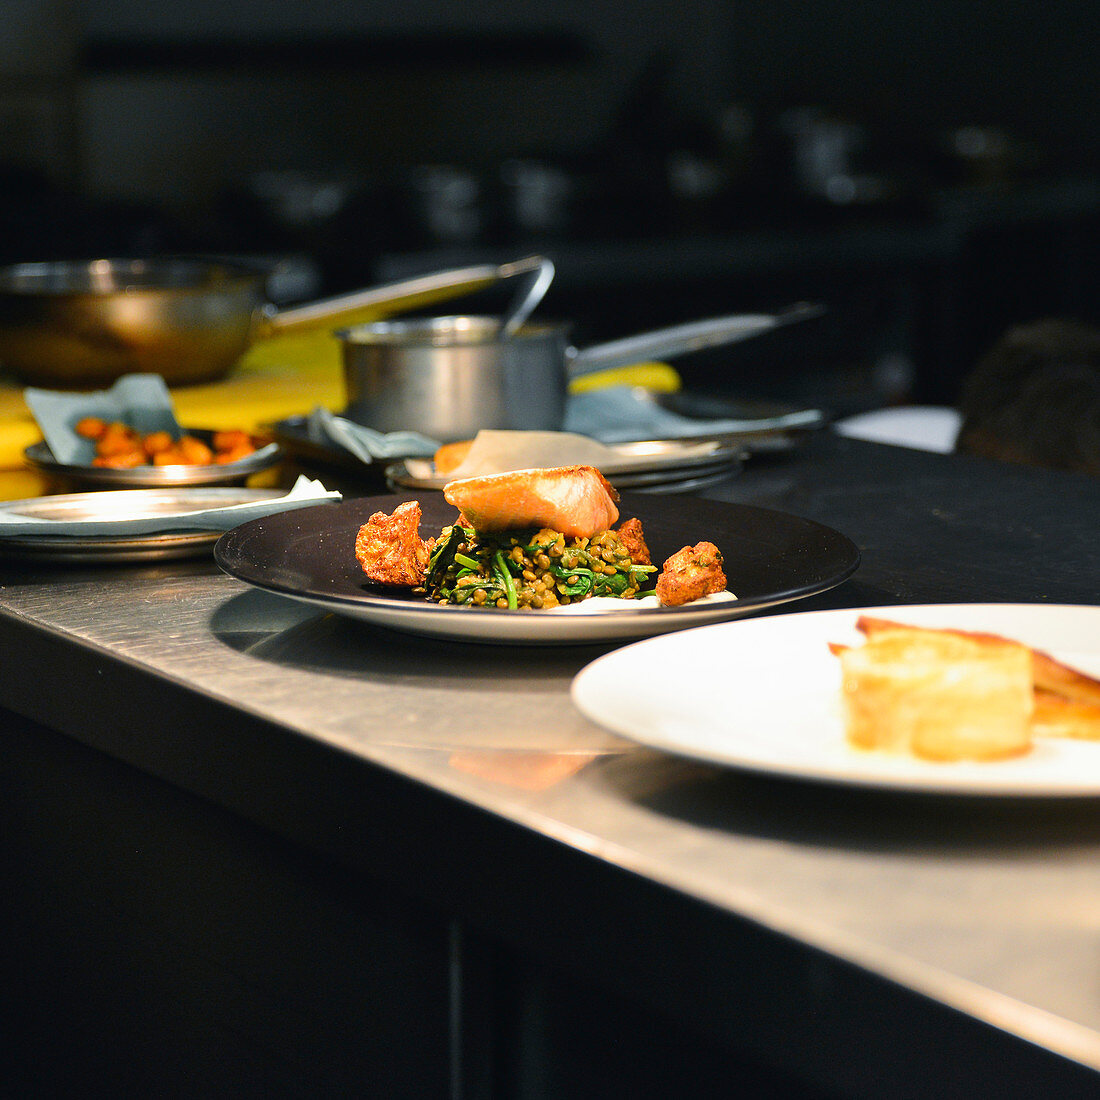 Plated food waiting for service in restaurant kitchen